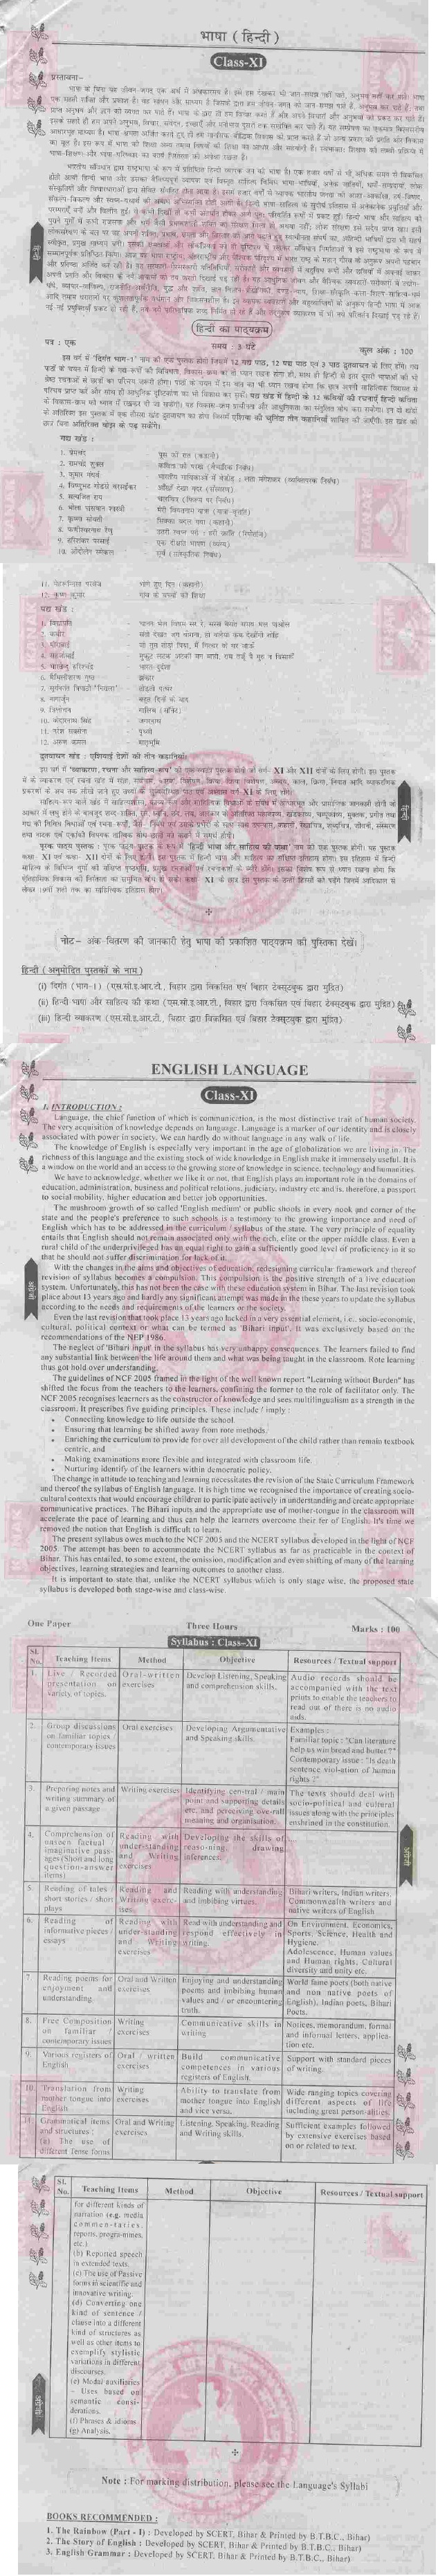 Bihar Board Senior Secondary Syllabus - Science